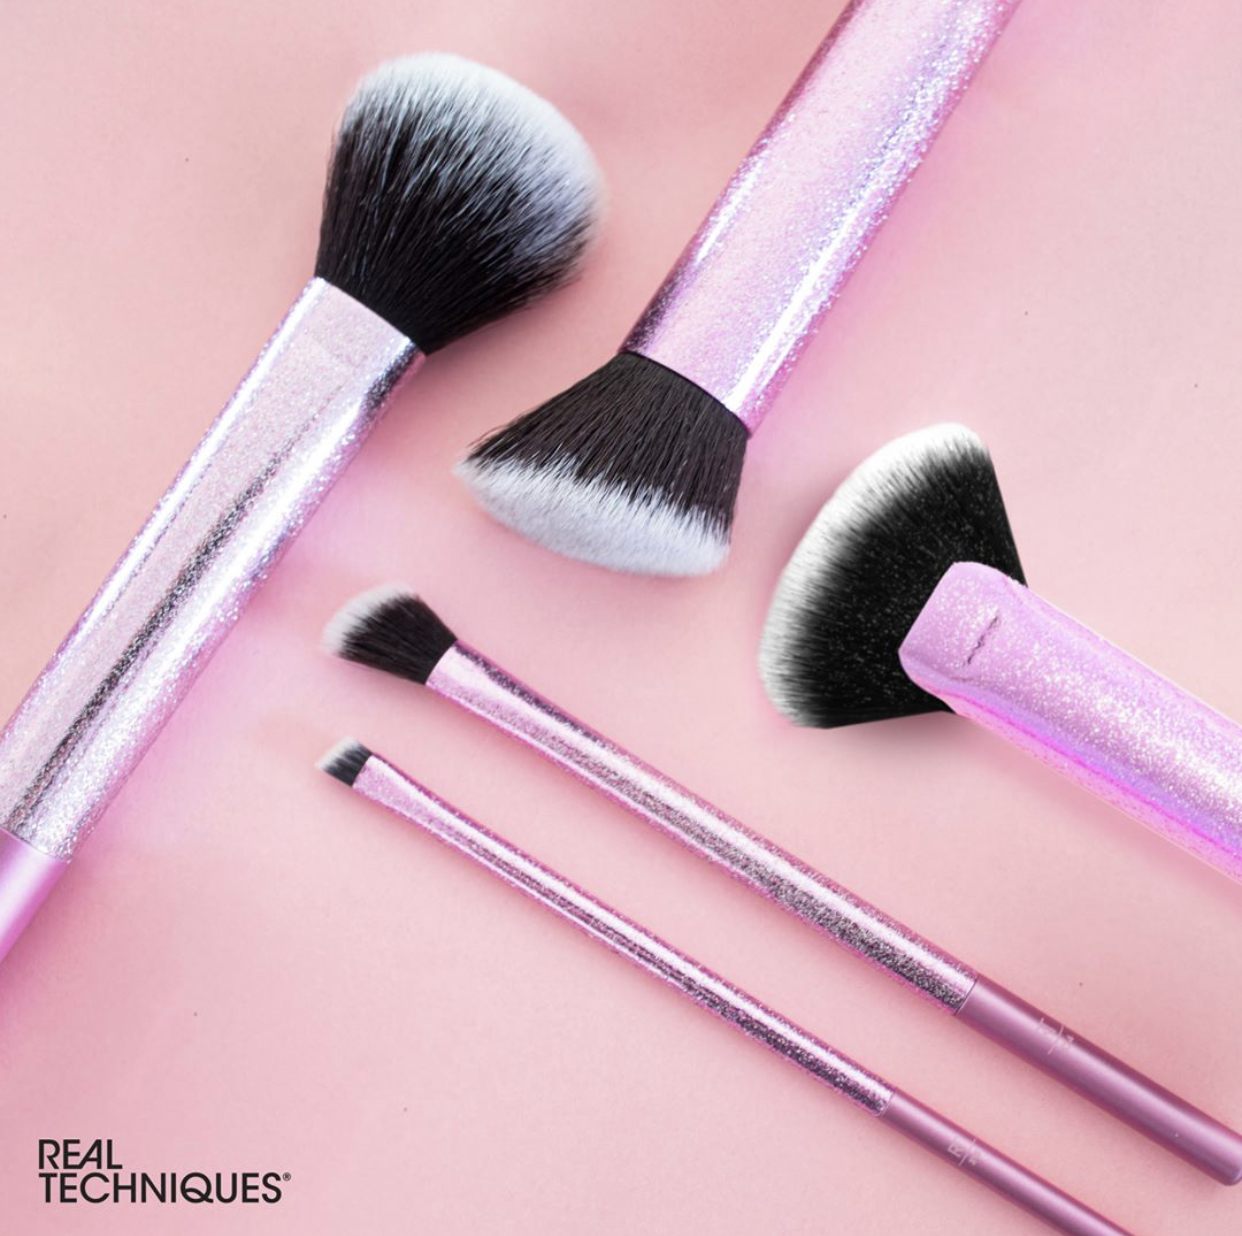 Real Techniques Pretty In Pink Brush Collection